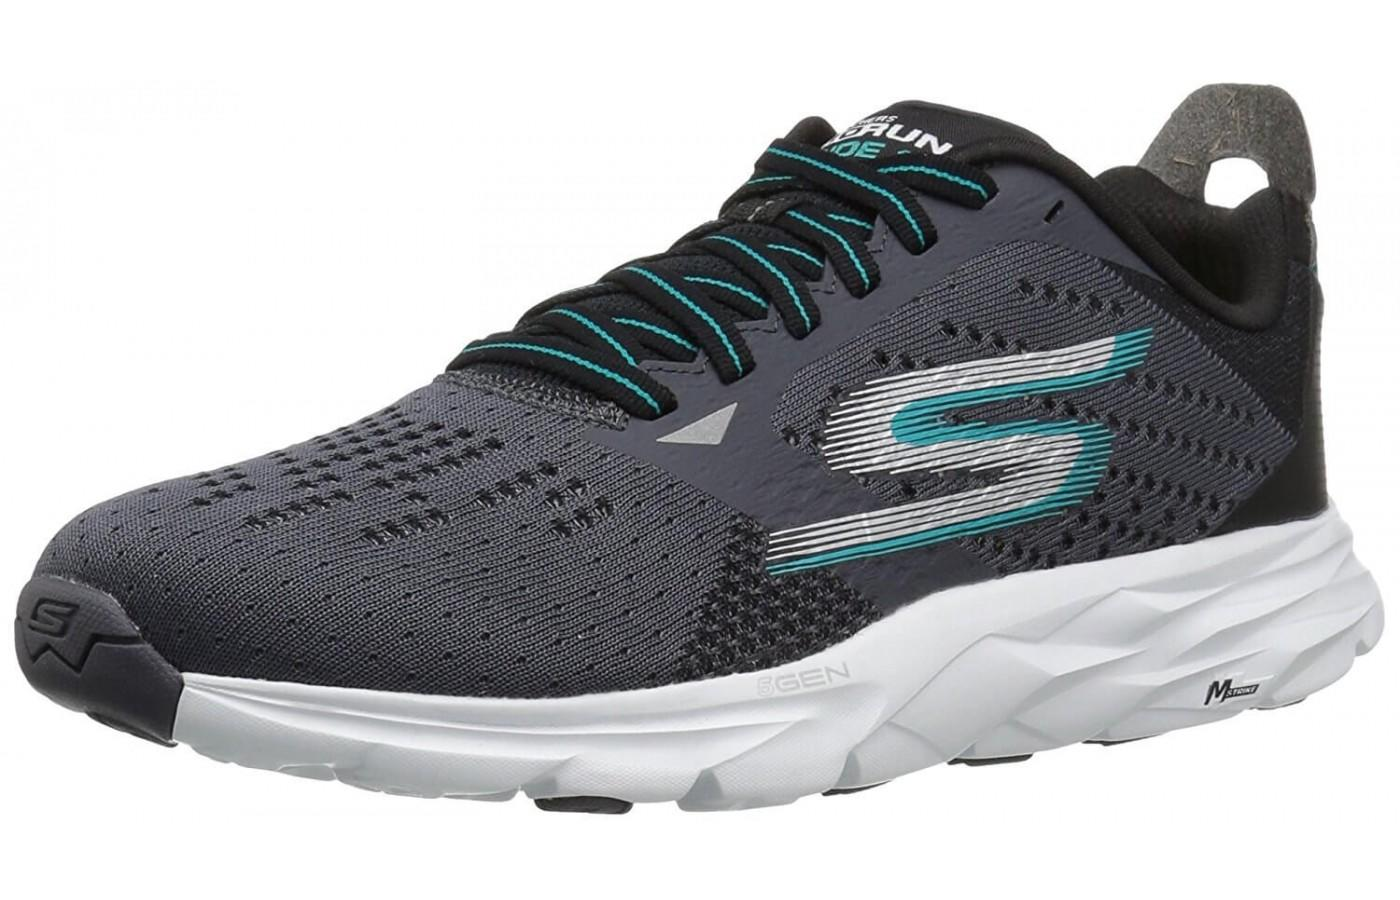 f7279f33 Skechers GOrun Ride 6 Review - Buy or Not in July 2019?